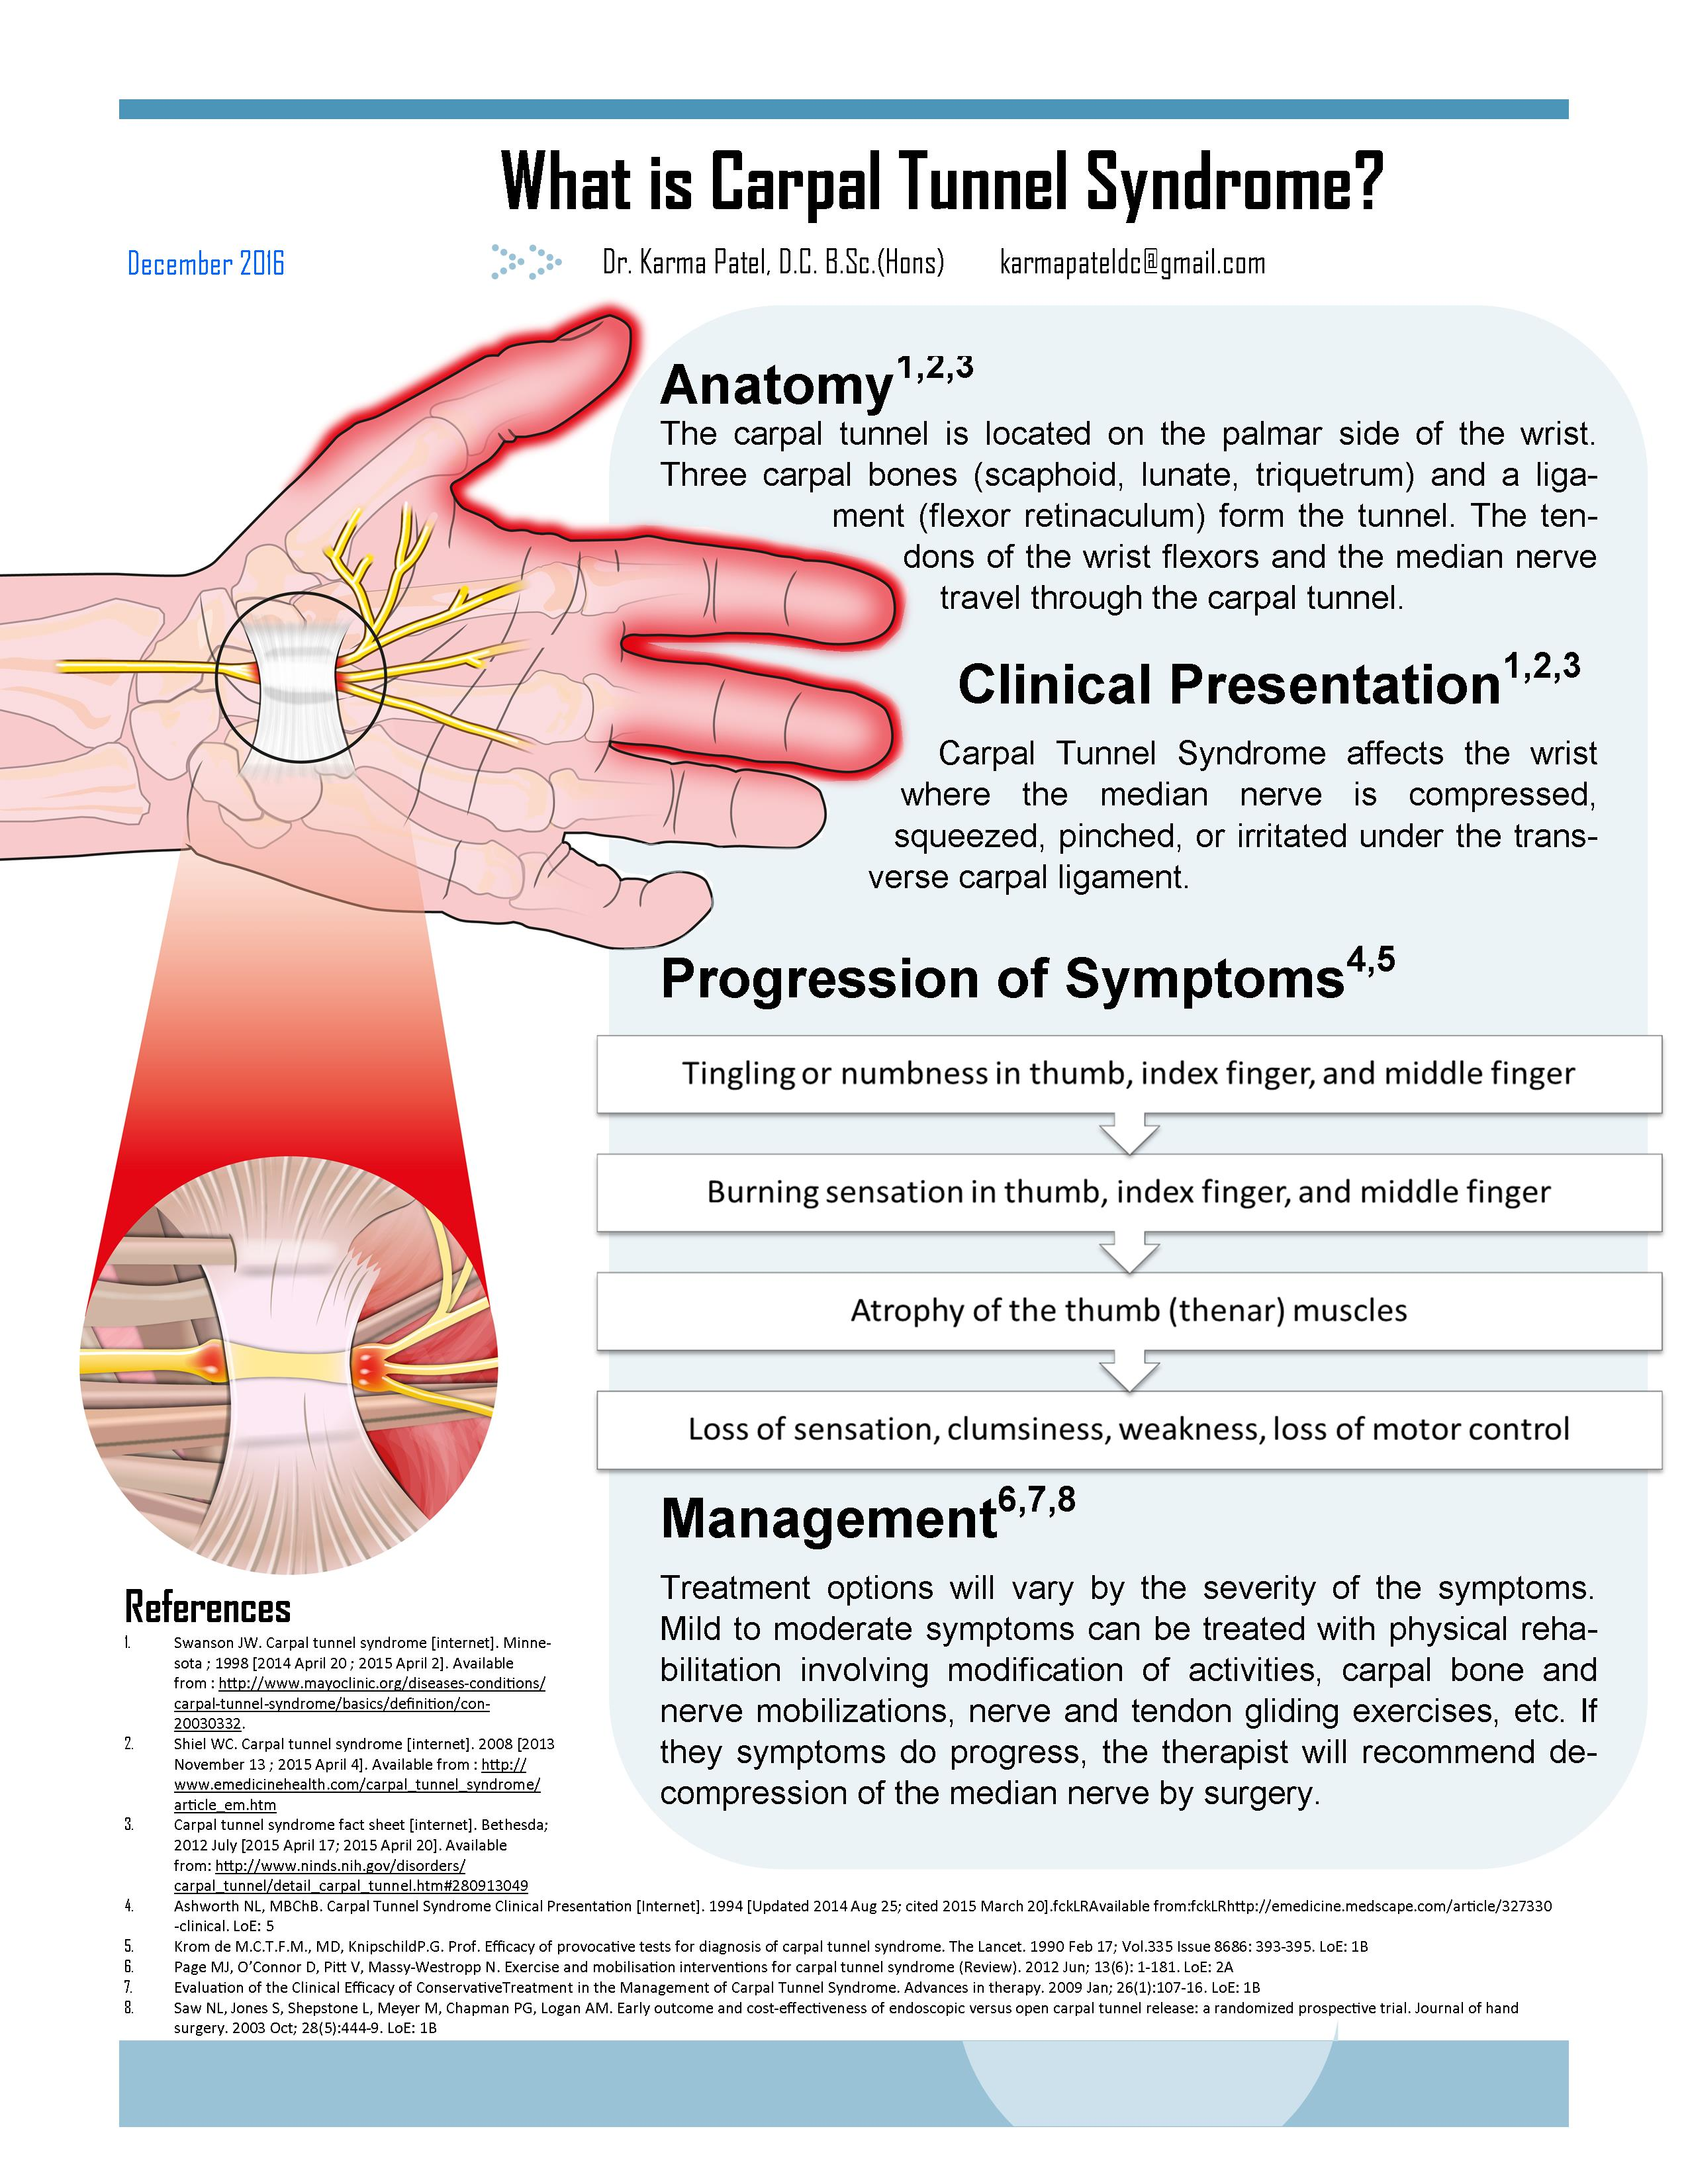 Are you losing grip strength? It could be Carpal Tunnel Syndrome ...